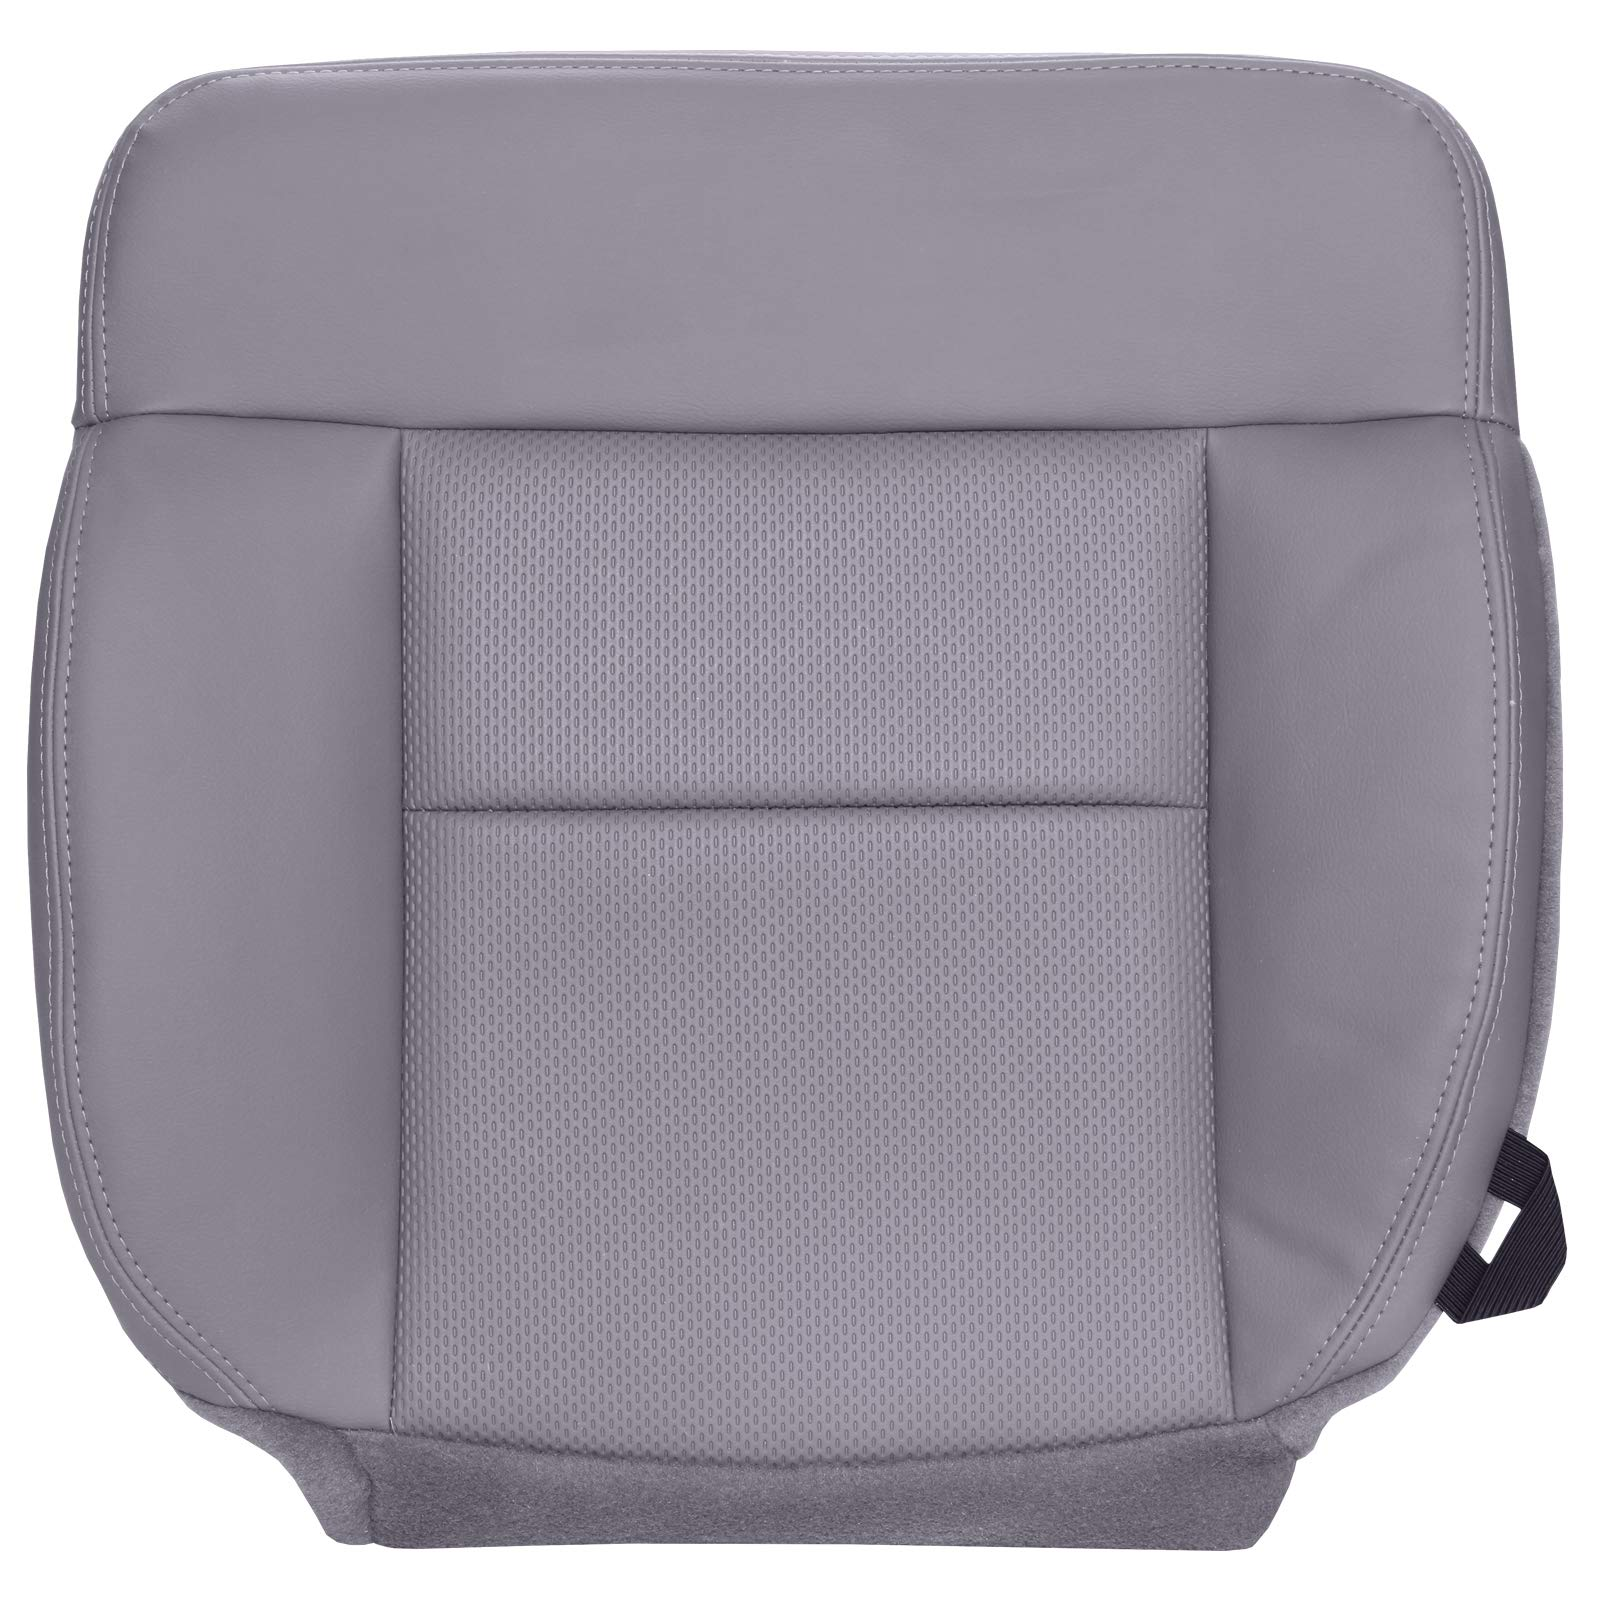 The Seat Shop Driver Bottom Replacement Vinyl Seat Cover - Medium Flint Gray (Compatible with 2004-2008 Ford F150 XL Work Truck)